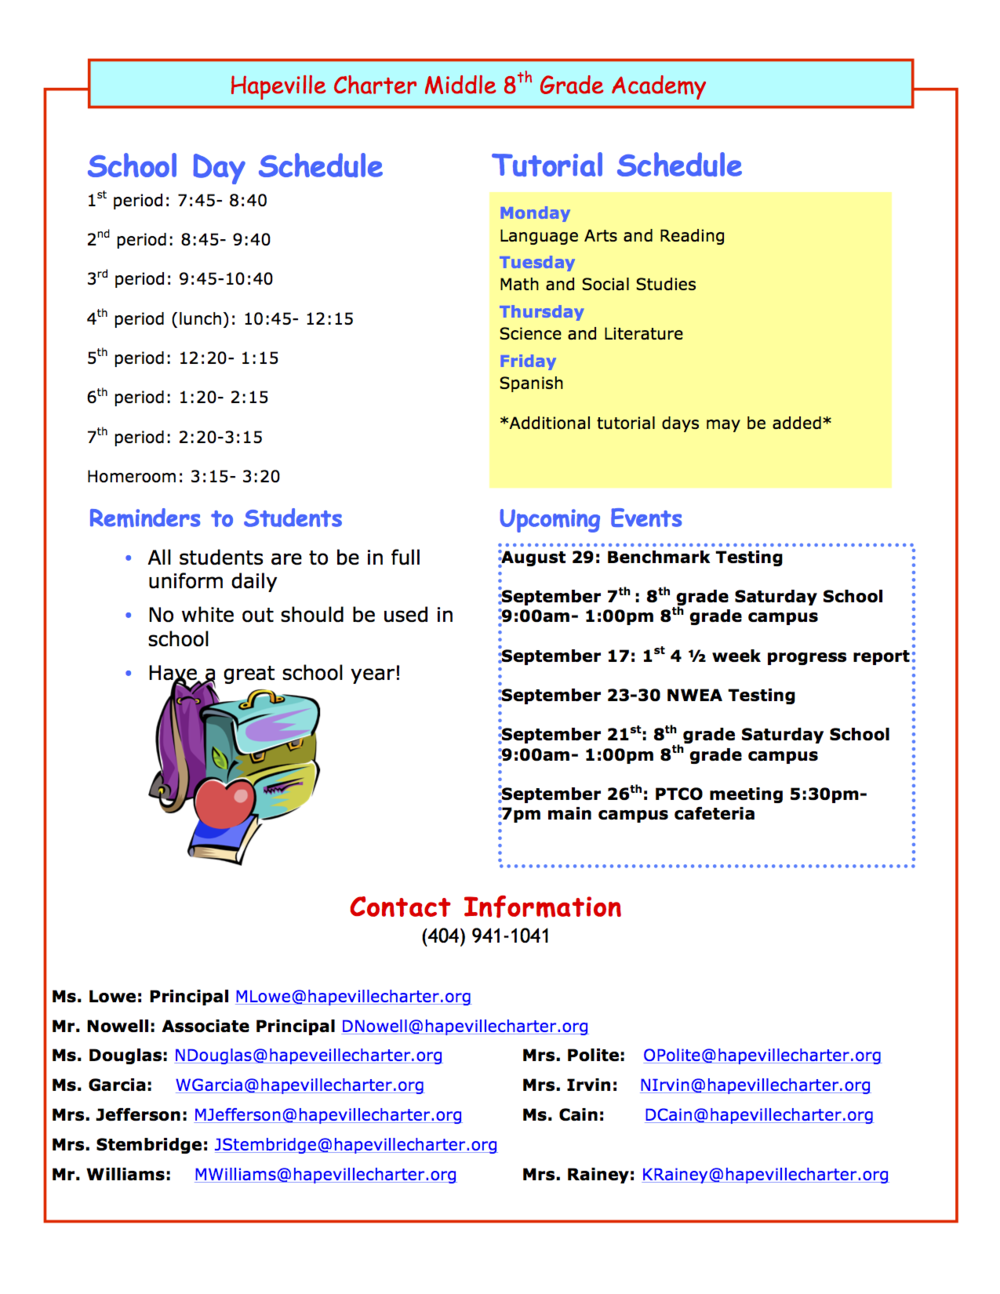 8th grade open house newsletter1.png